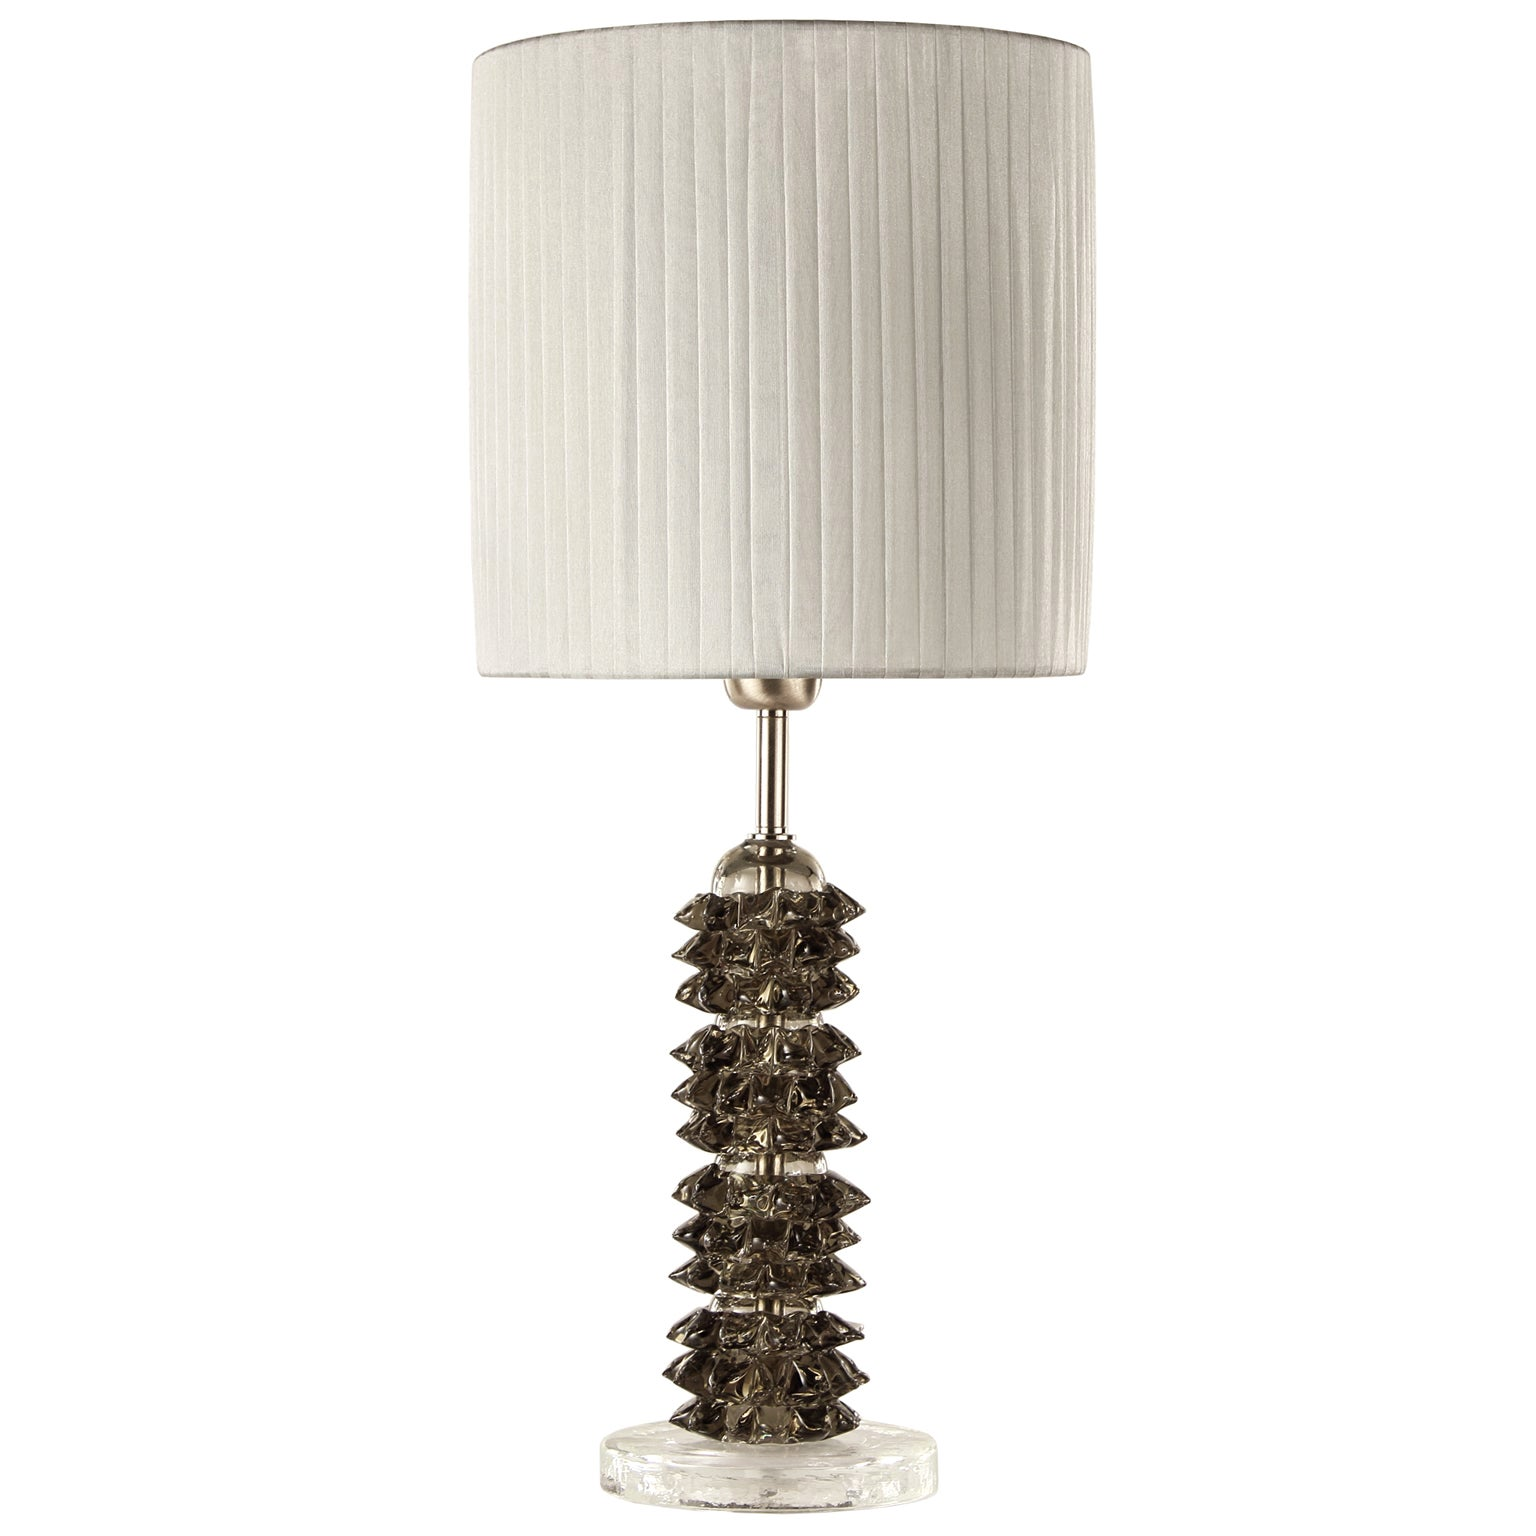 Artistic Rostri Table Lamp Light Grey Murano Glass, Grey Lampshade by Multiforme